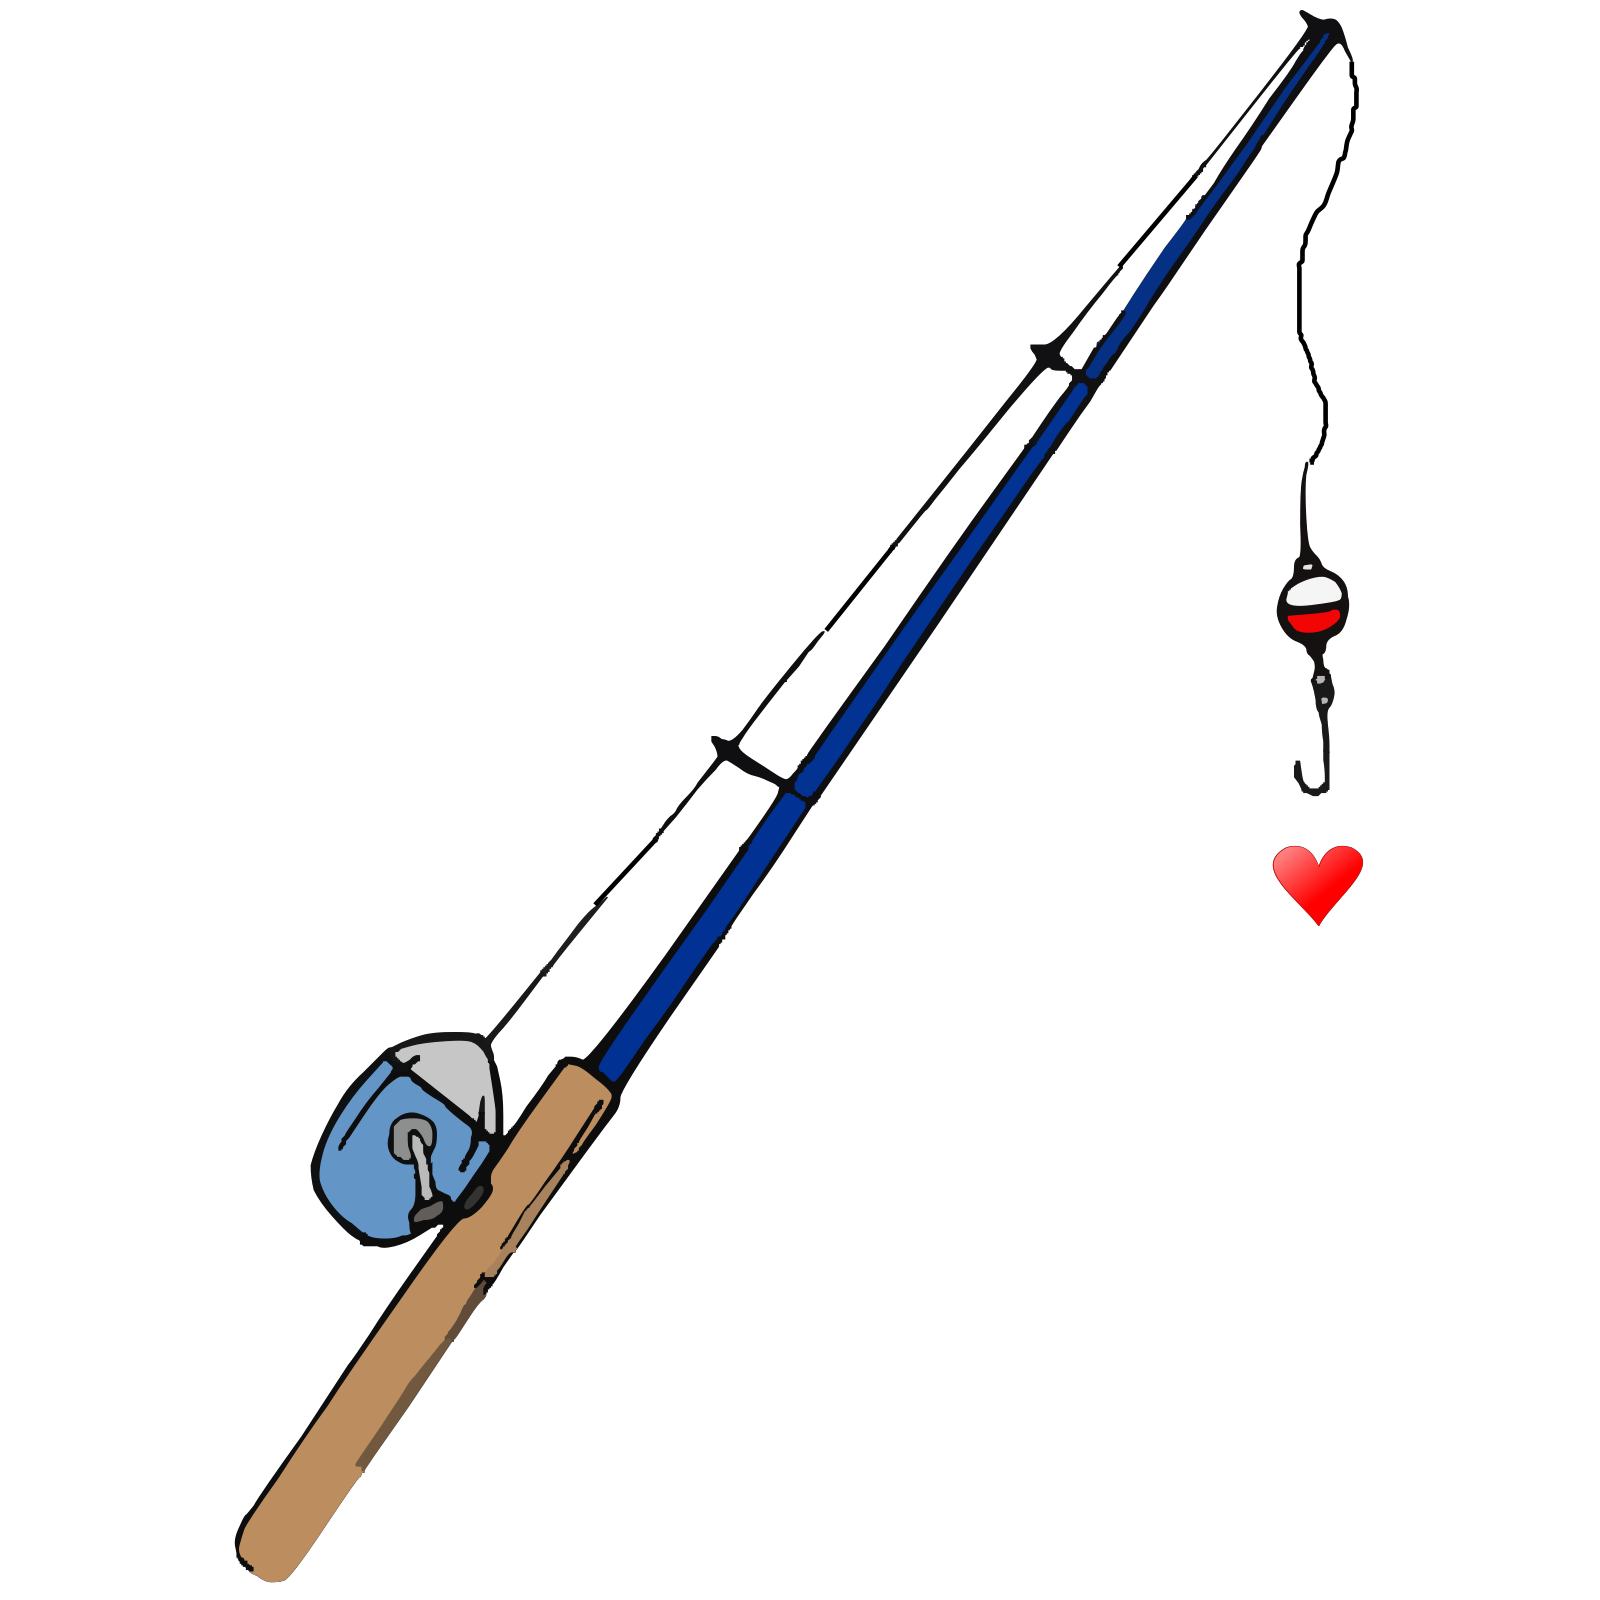 Download Fishing Pole Heart Svg Vector Fishing Pole Heart Clip Art Svg Clipart